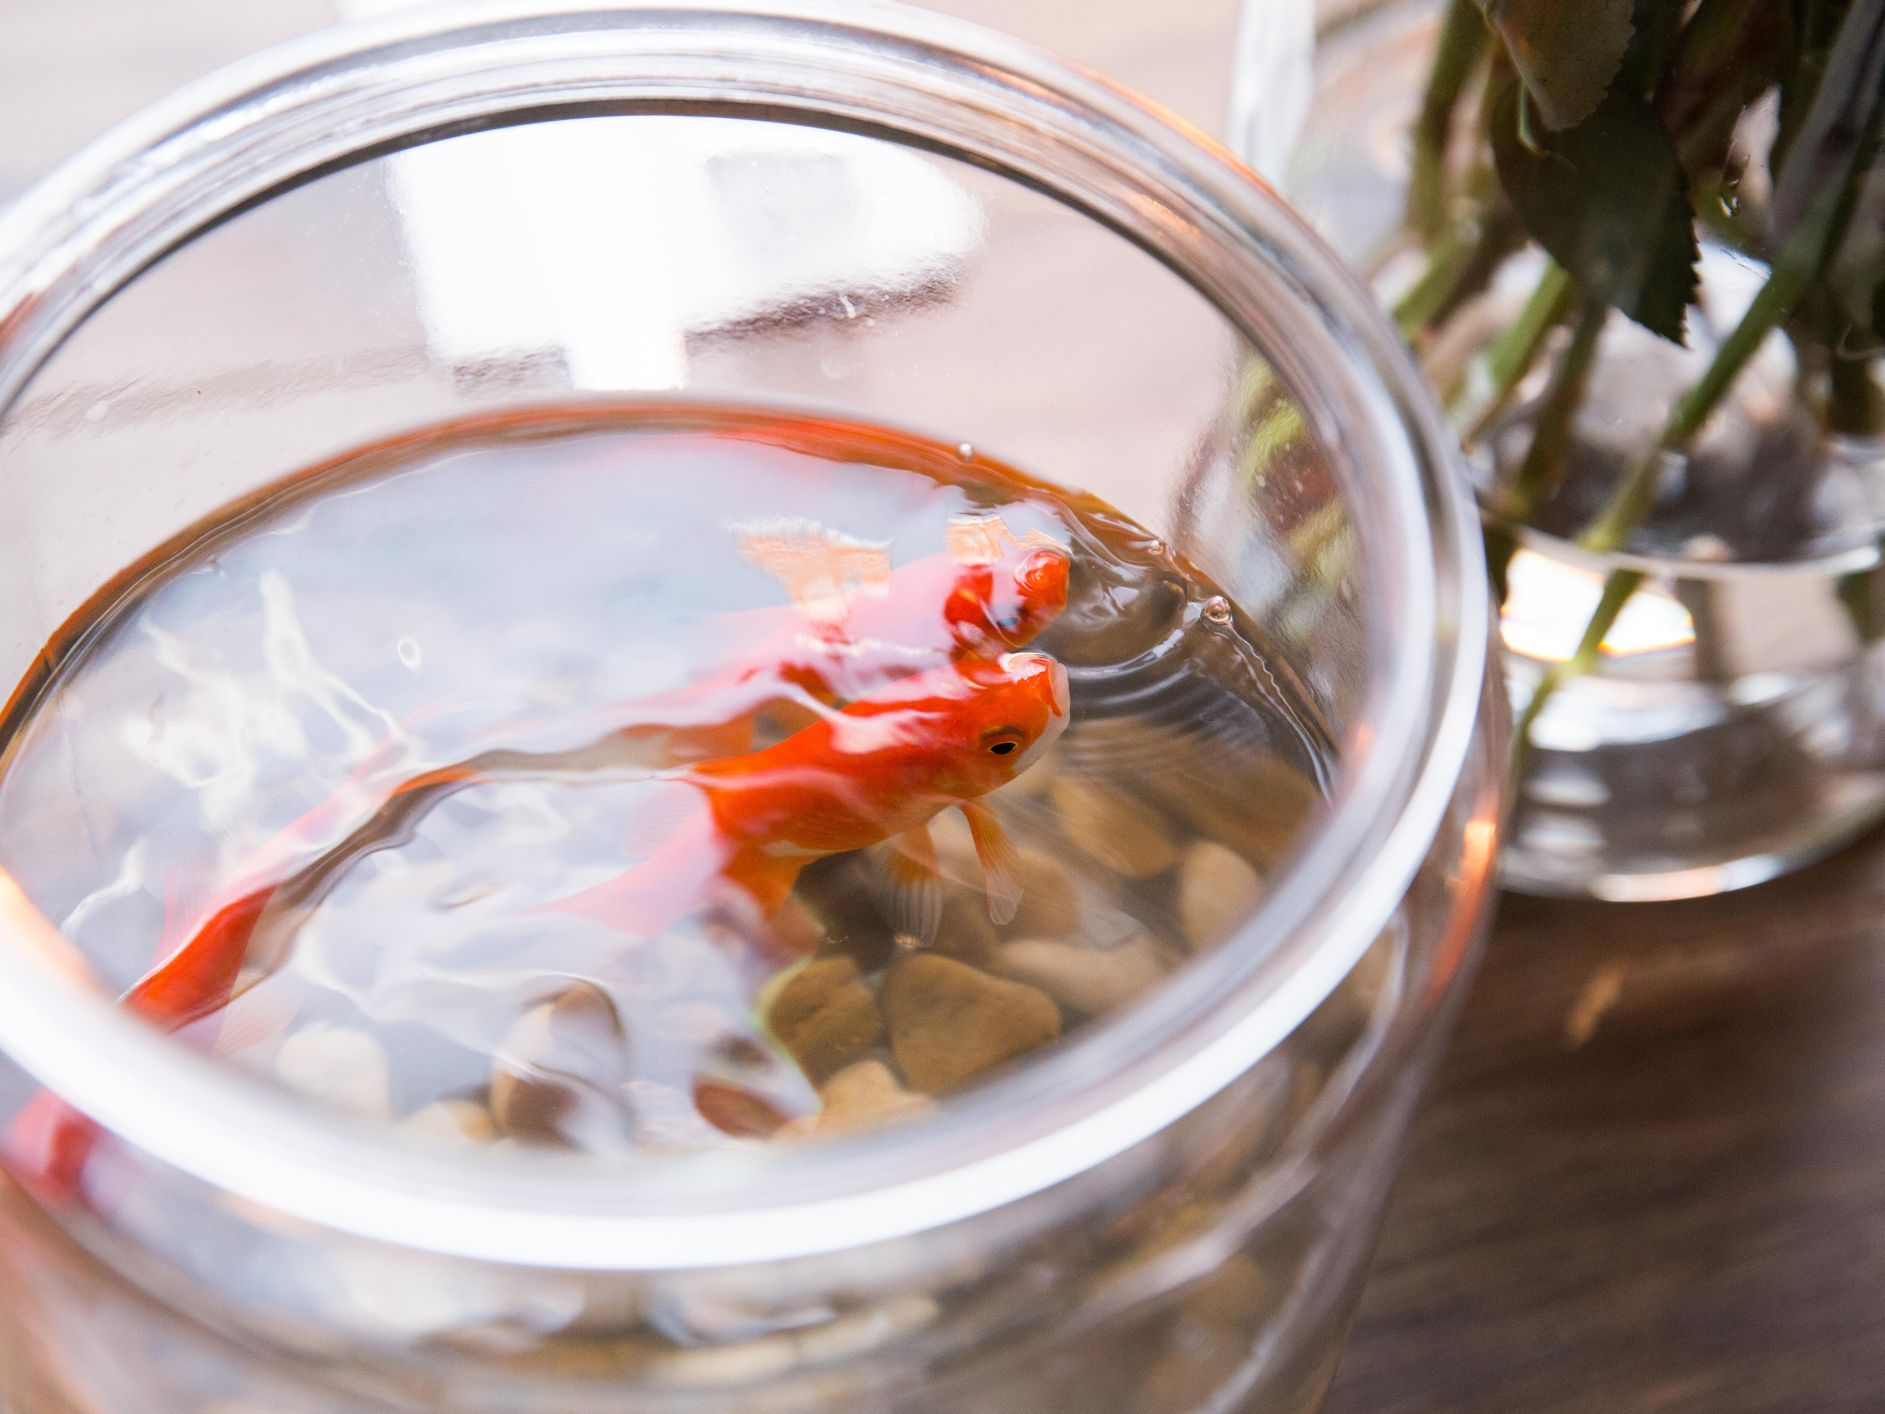 How To Remove White Residue From Aquarium Glass